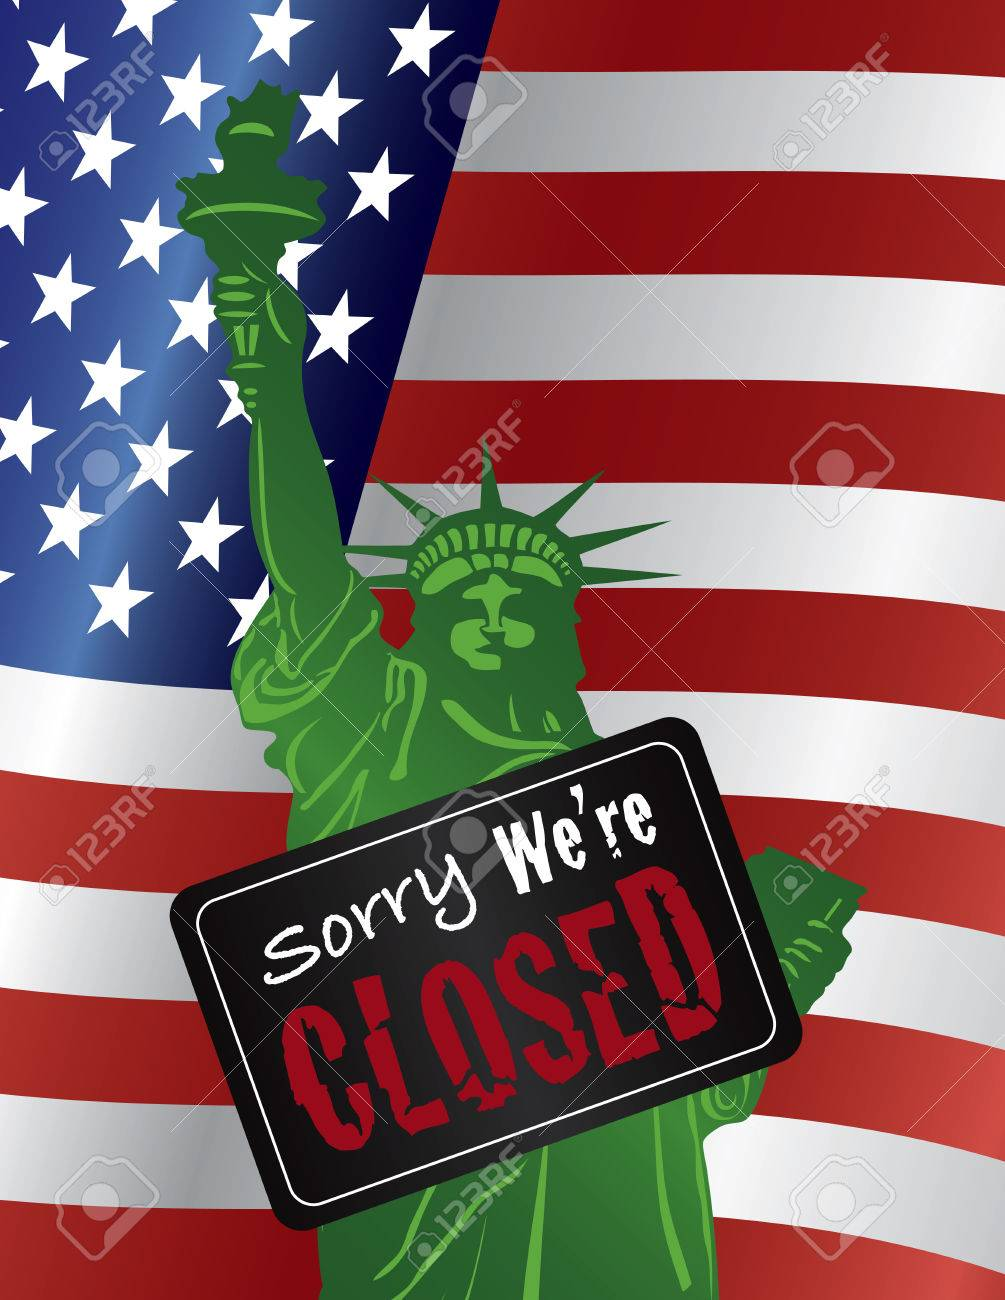 123RF.com Government Shutdown Statue of Liberty Closeup with Sorry We Are Closed Sign on USA American Flag